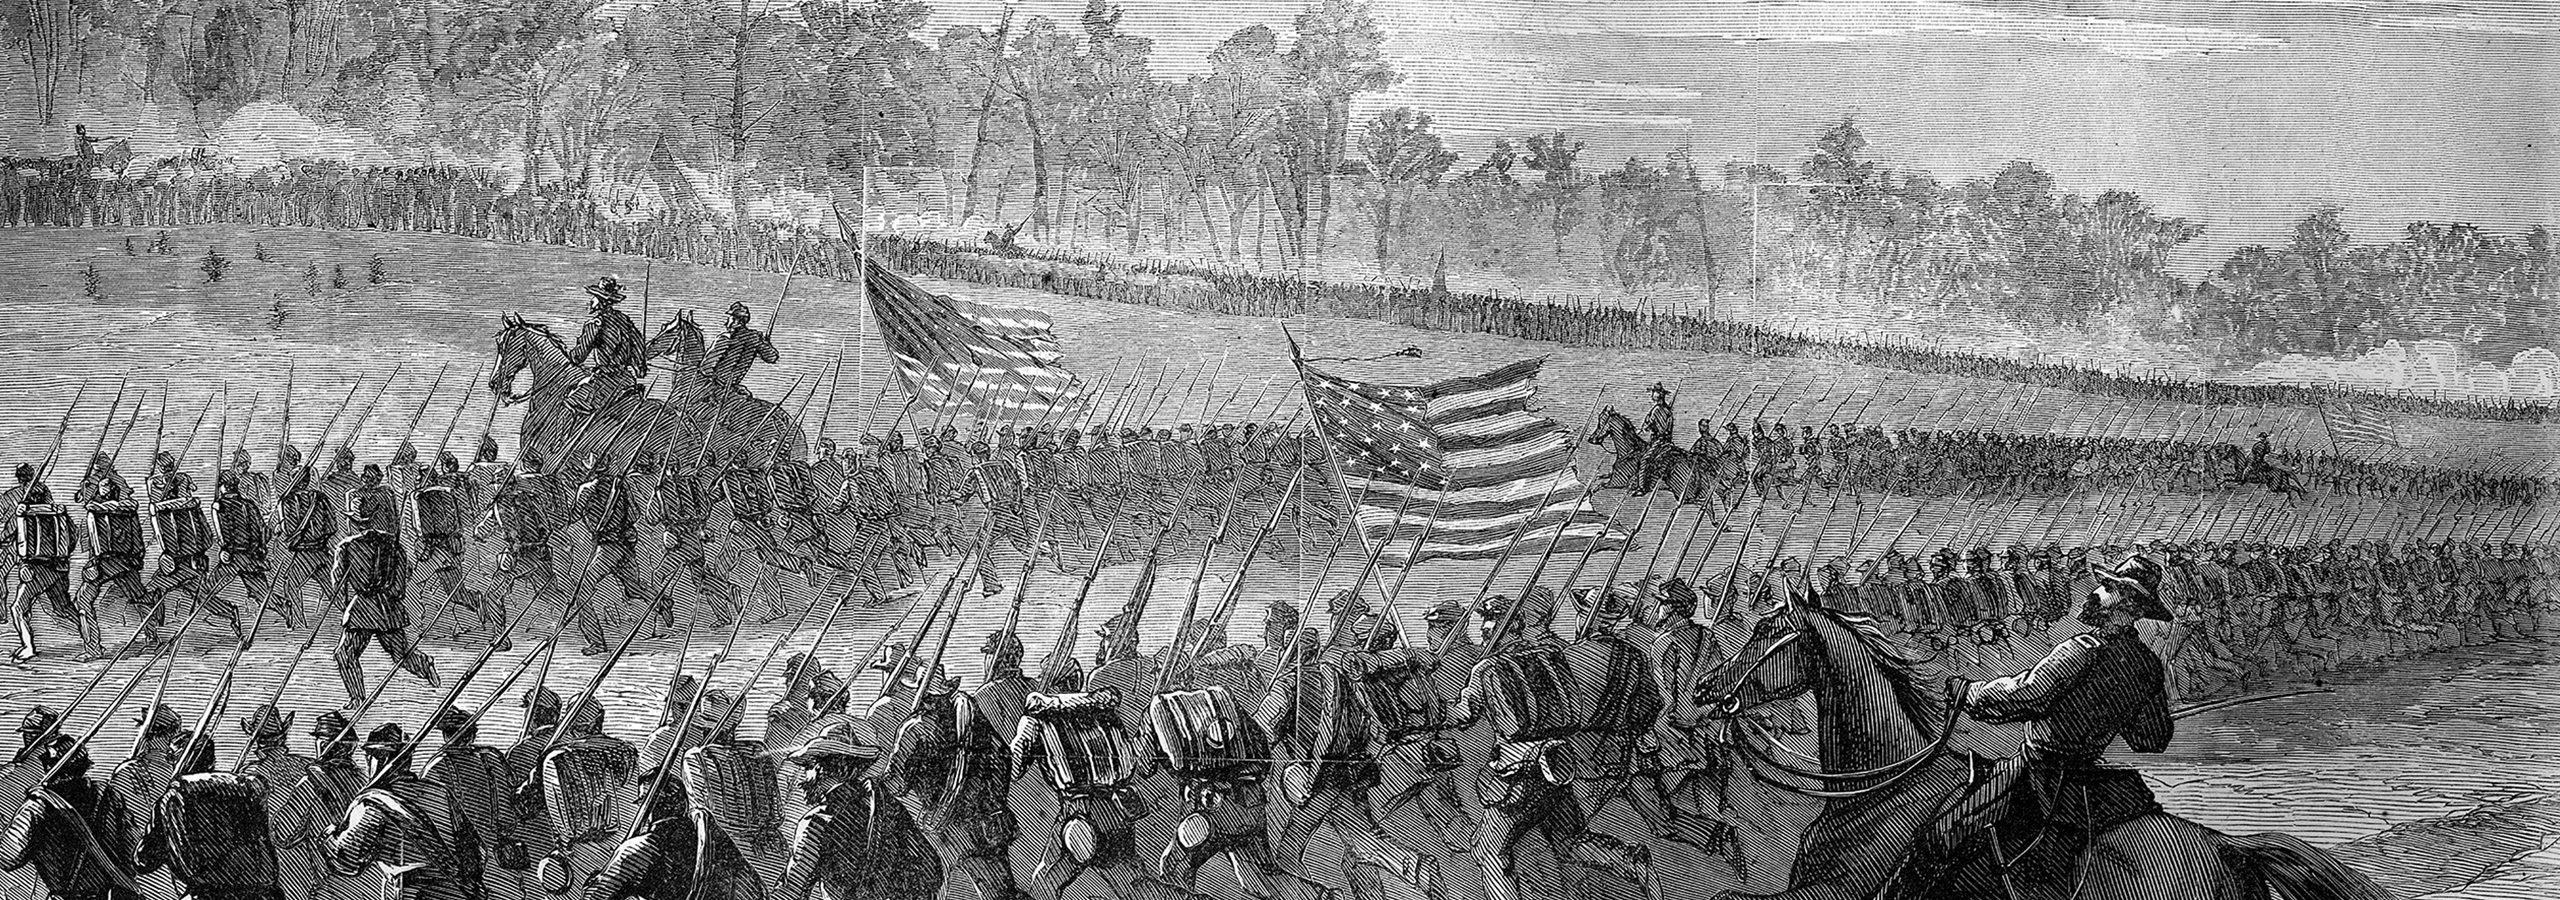 account of the battle of antietam during the civil war in america Battle of antietam summary: the battle of antietam, aka battle of sharpsburg, resulted in not only the bloodiest day of the american civil war » see all antietam articles prelude to antietam shortly after routing the union army of virginia under maj gen john pope in the second battle of.